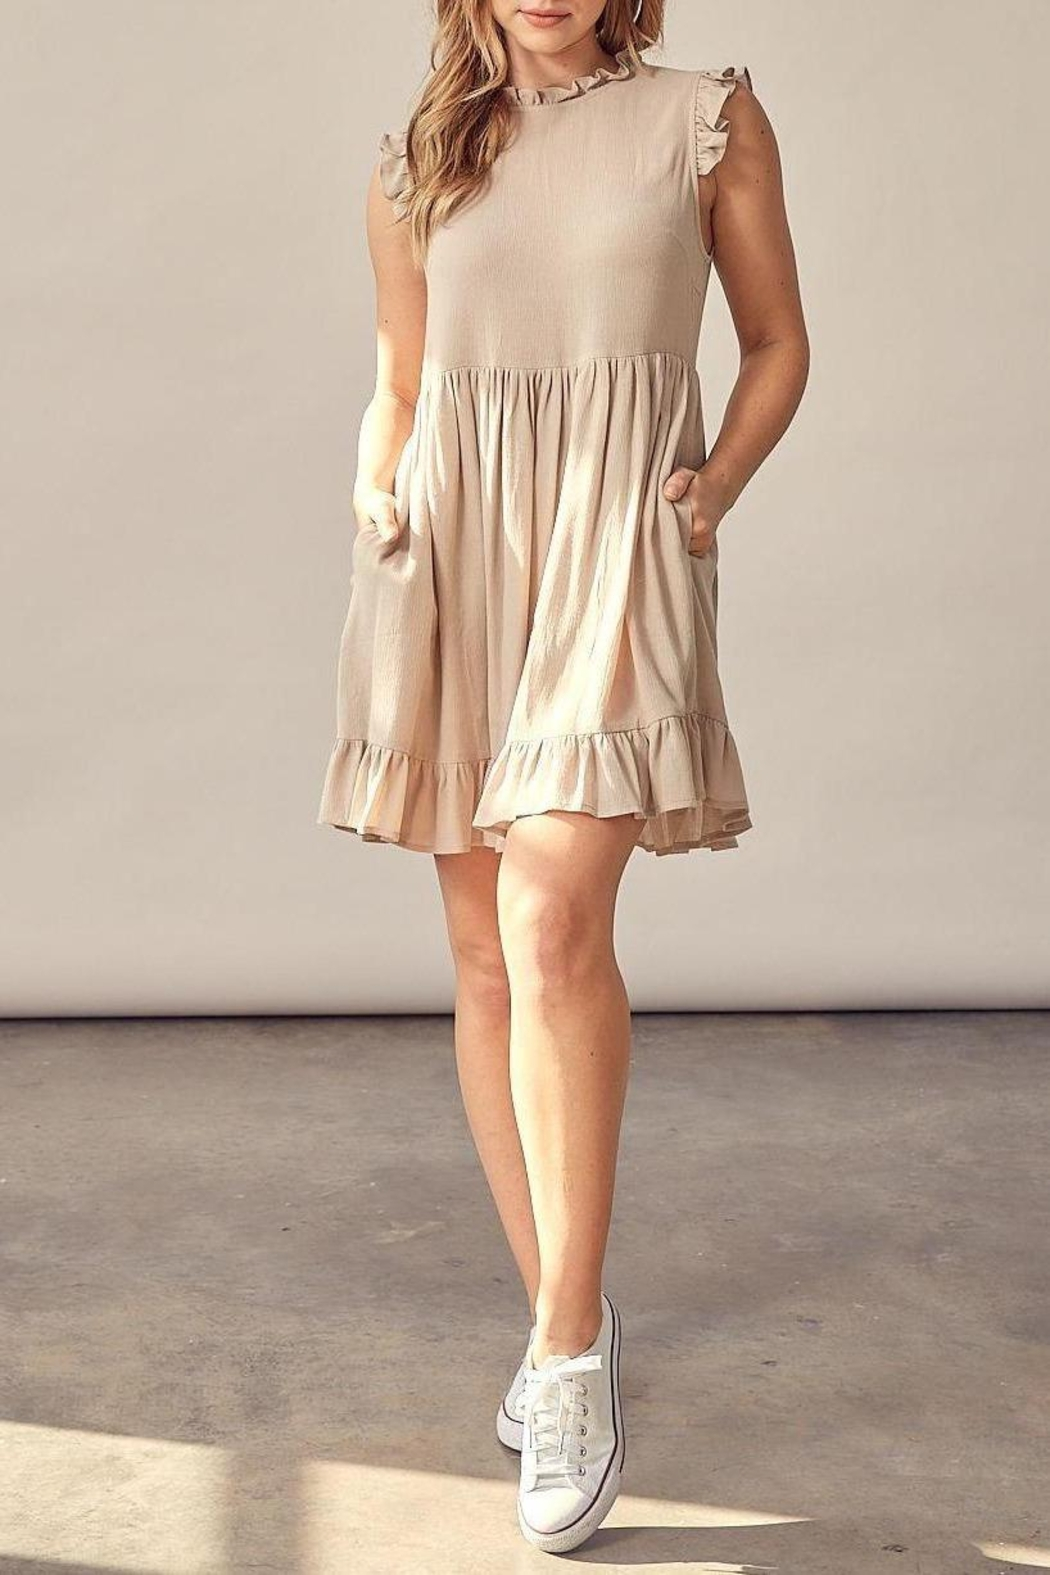 Muse Runaway With Me Rayon Gauze Ruffle Detail Dress (Available In Natural & Black) - Main Image